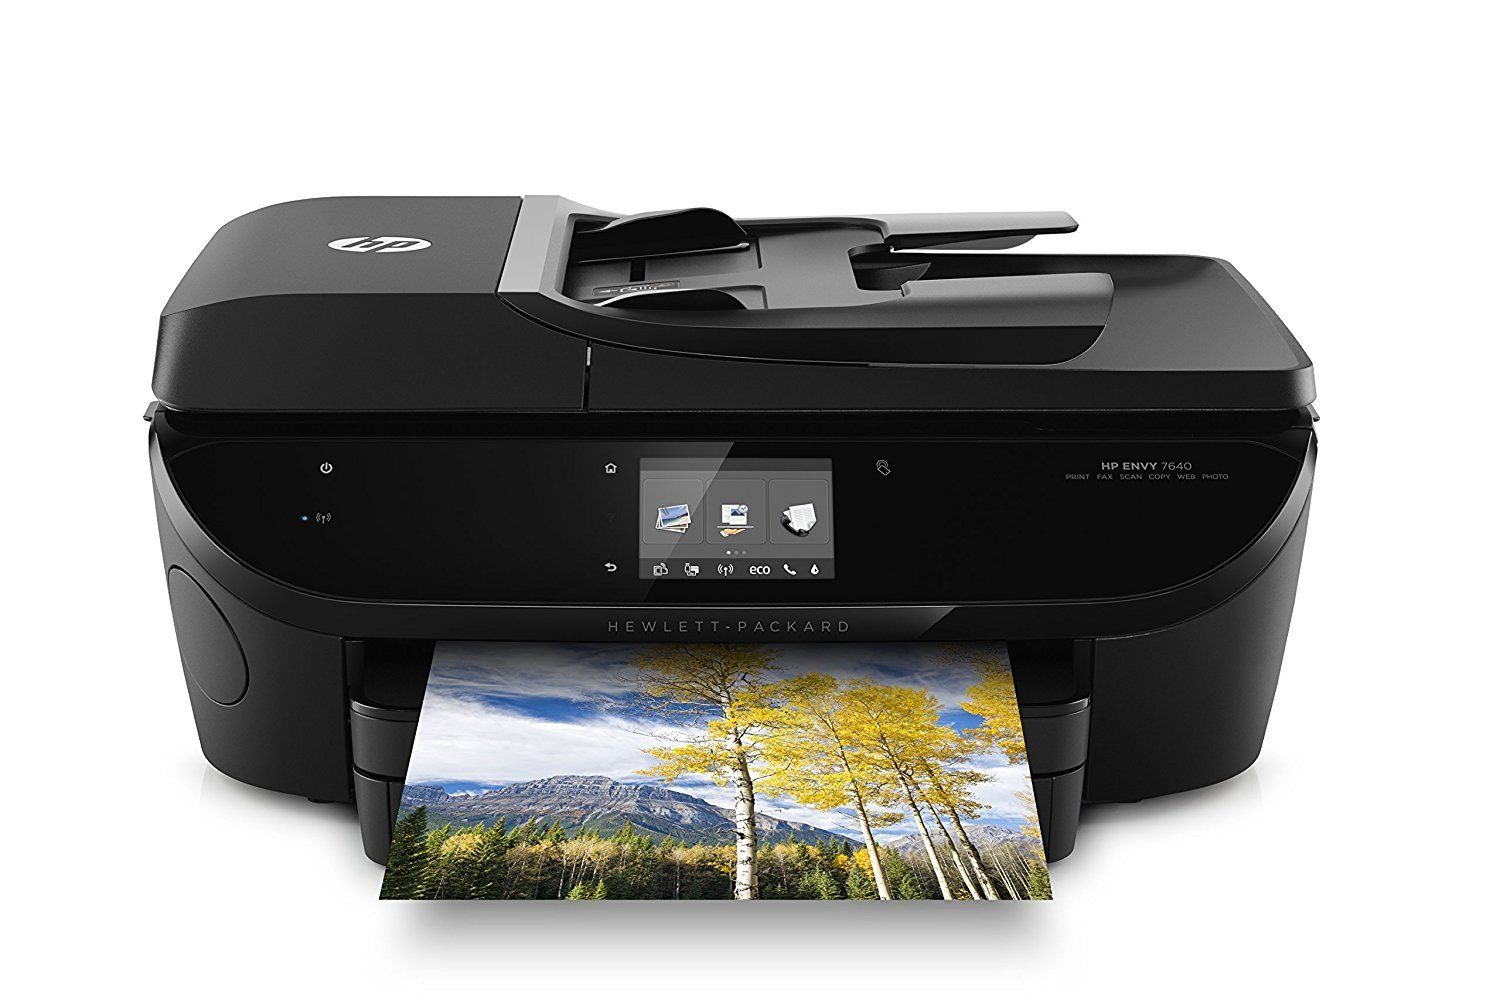 HP Envy 7640 All in One Color Photo Printer sepiadesk